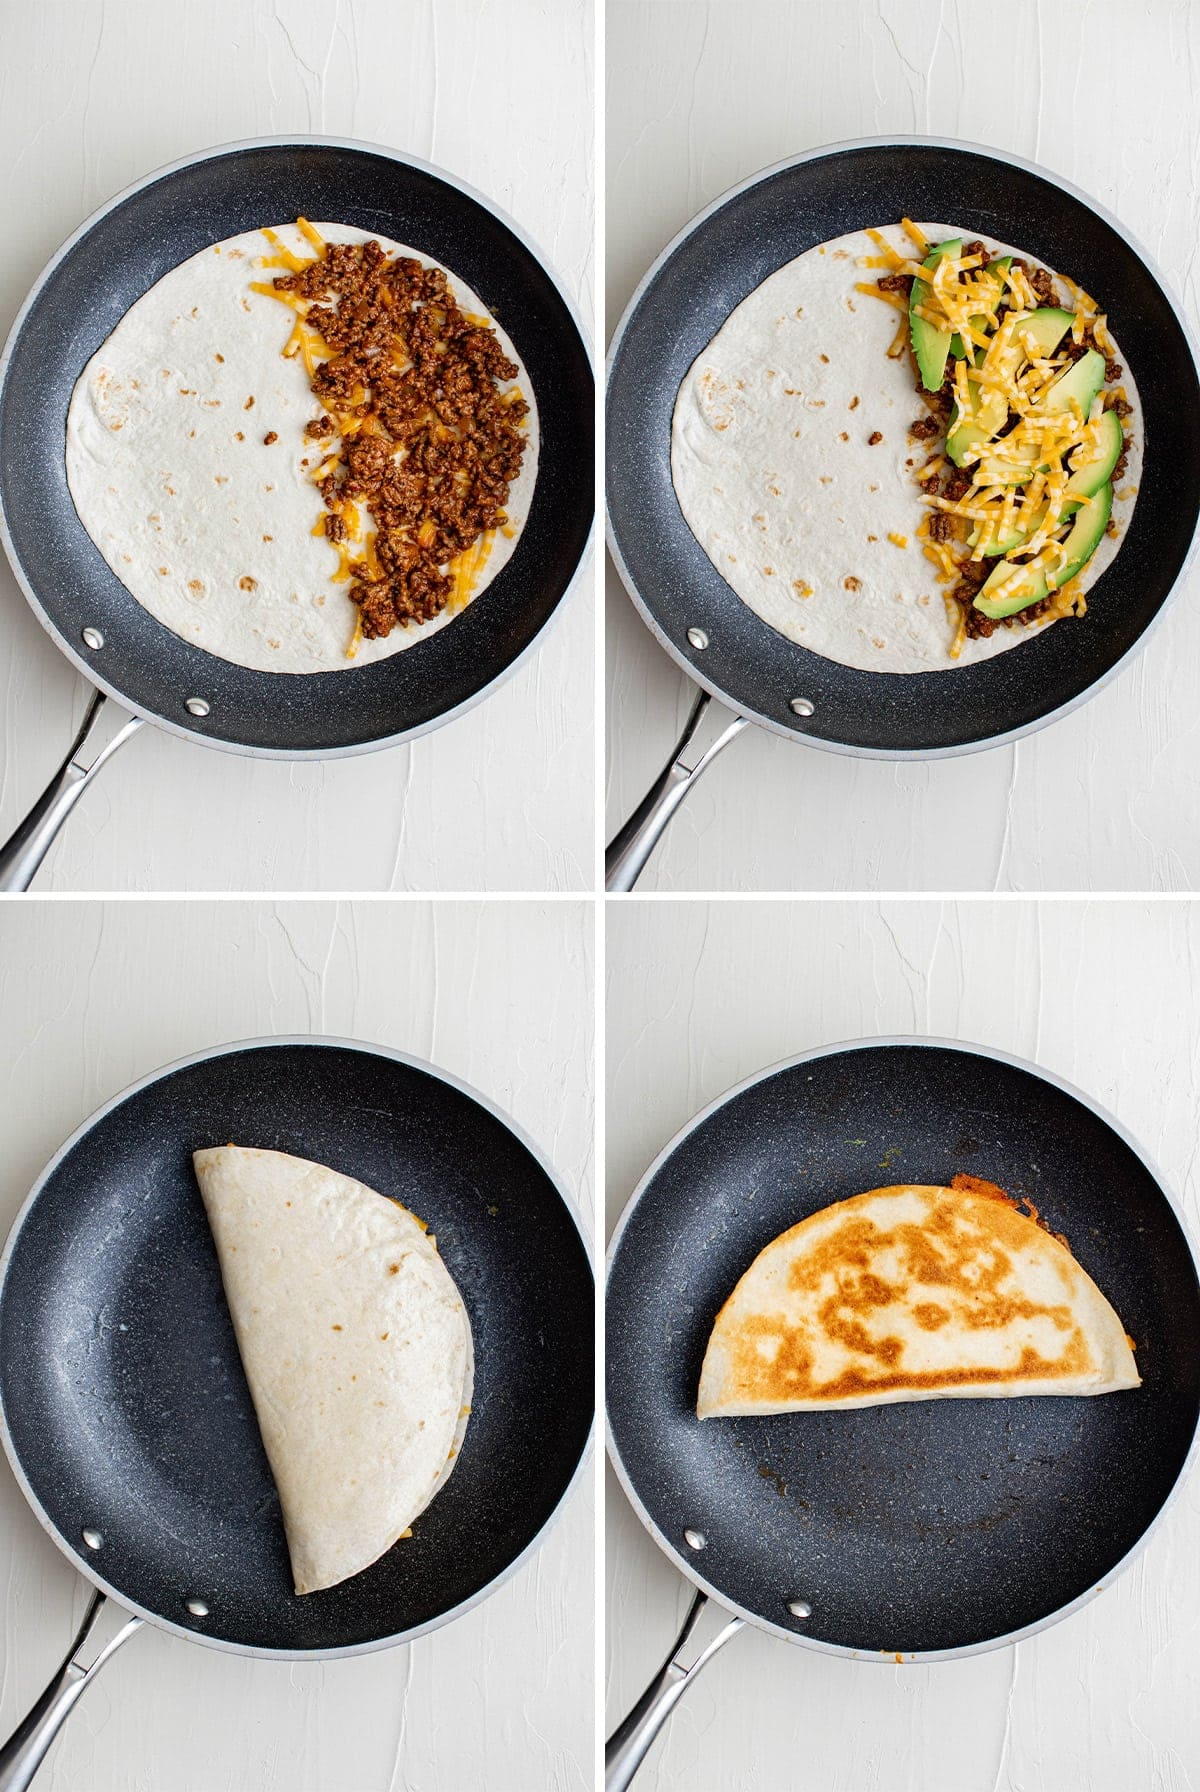 4 images of ground beef quesadillas cooking in a skillet